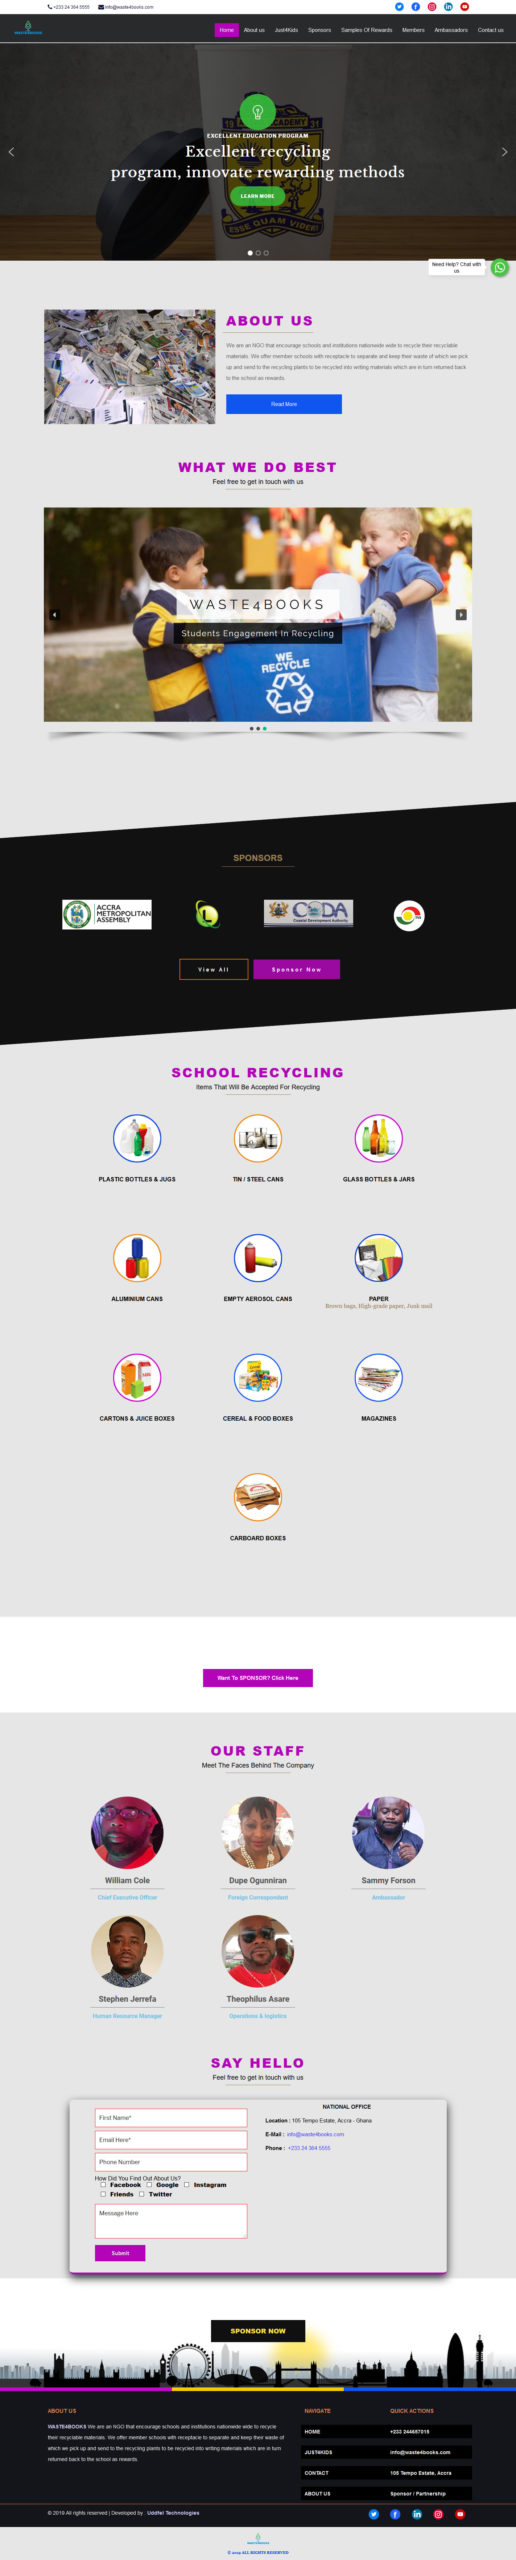 Excellent Recycling Company | Uddfel Technologies Limited